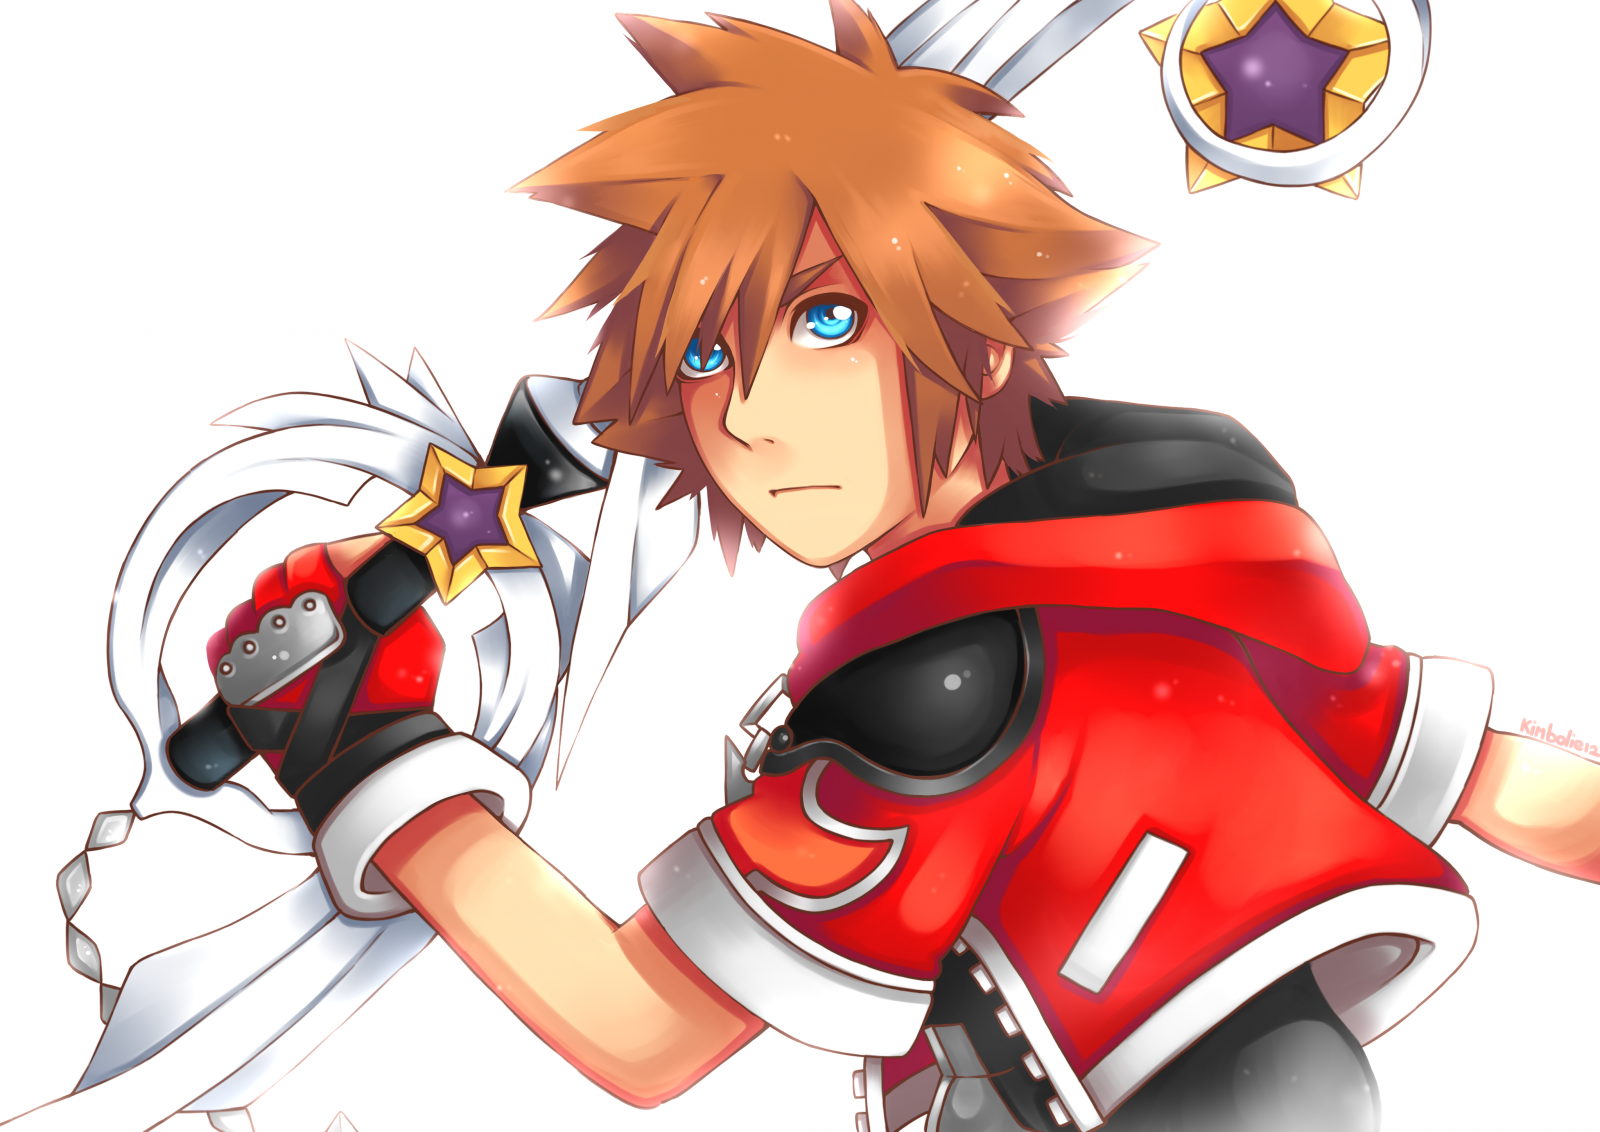 Kingdom Hearts 3 Sora Drawings Kh13 For Kingdom Hearts